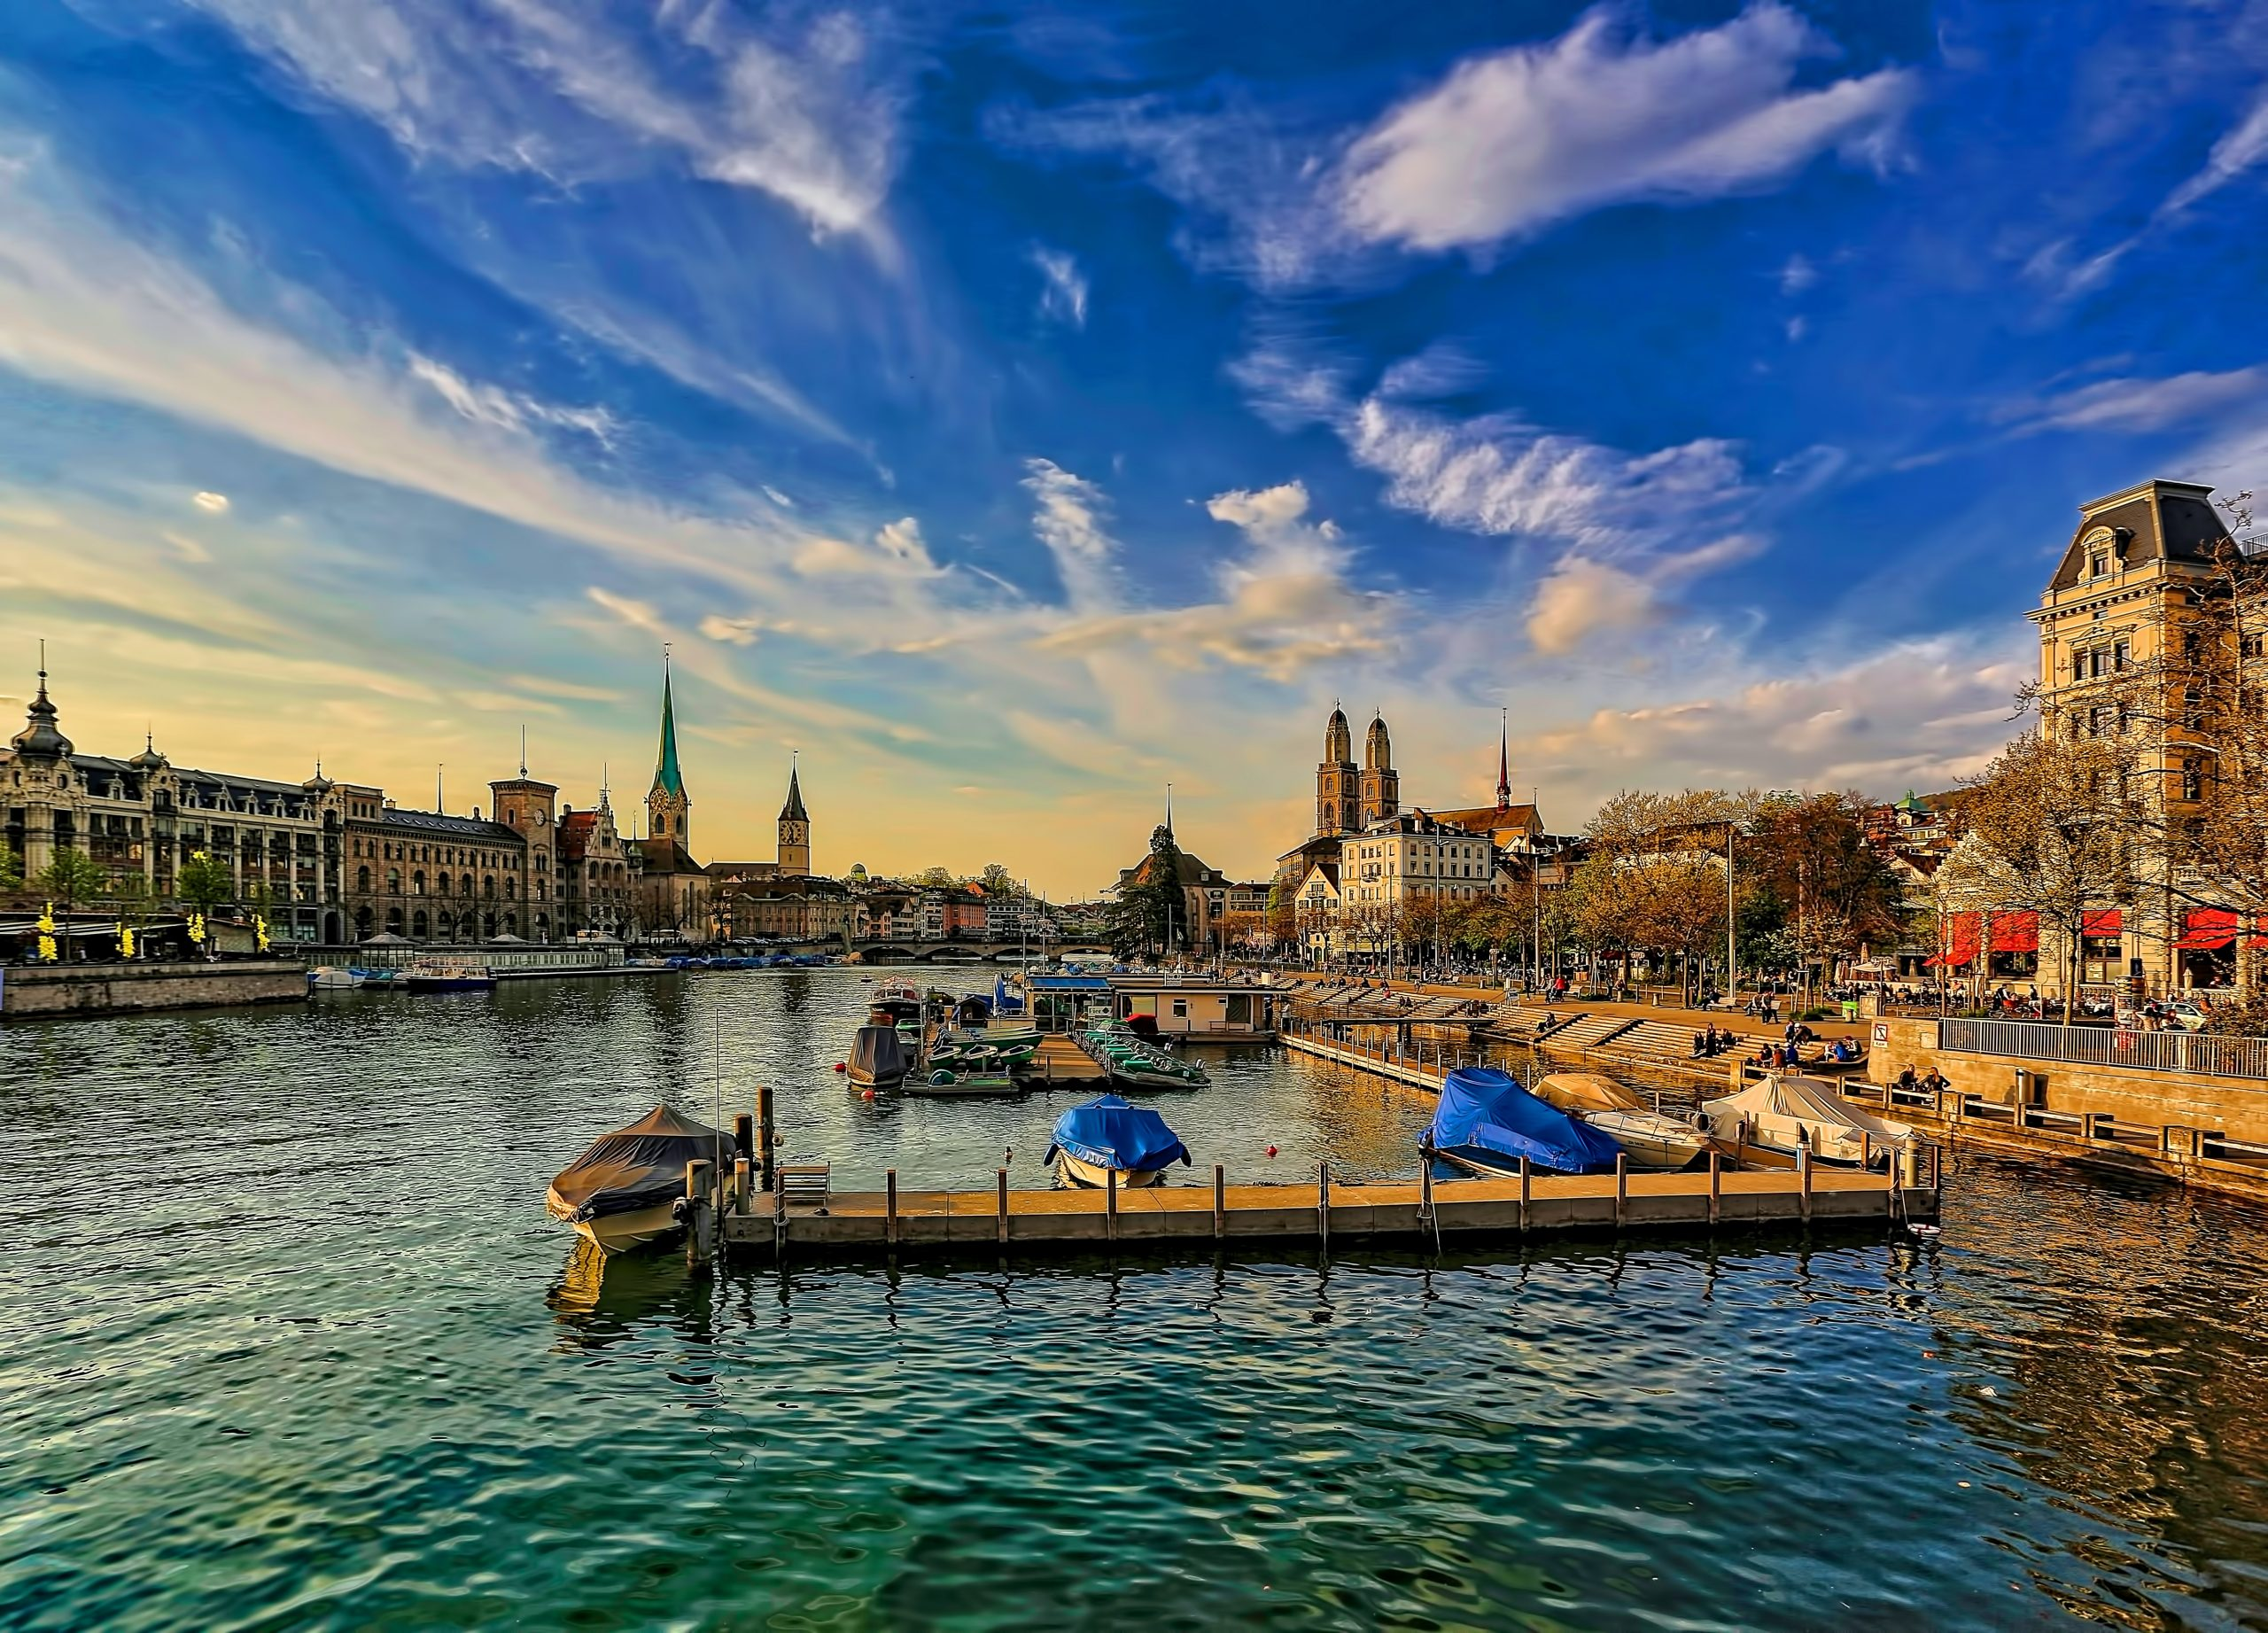 zurich airport to city, zurich airport to city center, How To Get From Zurich Airport to City Center